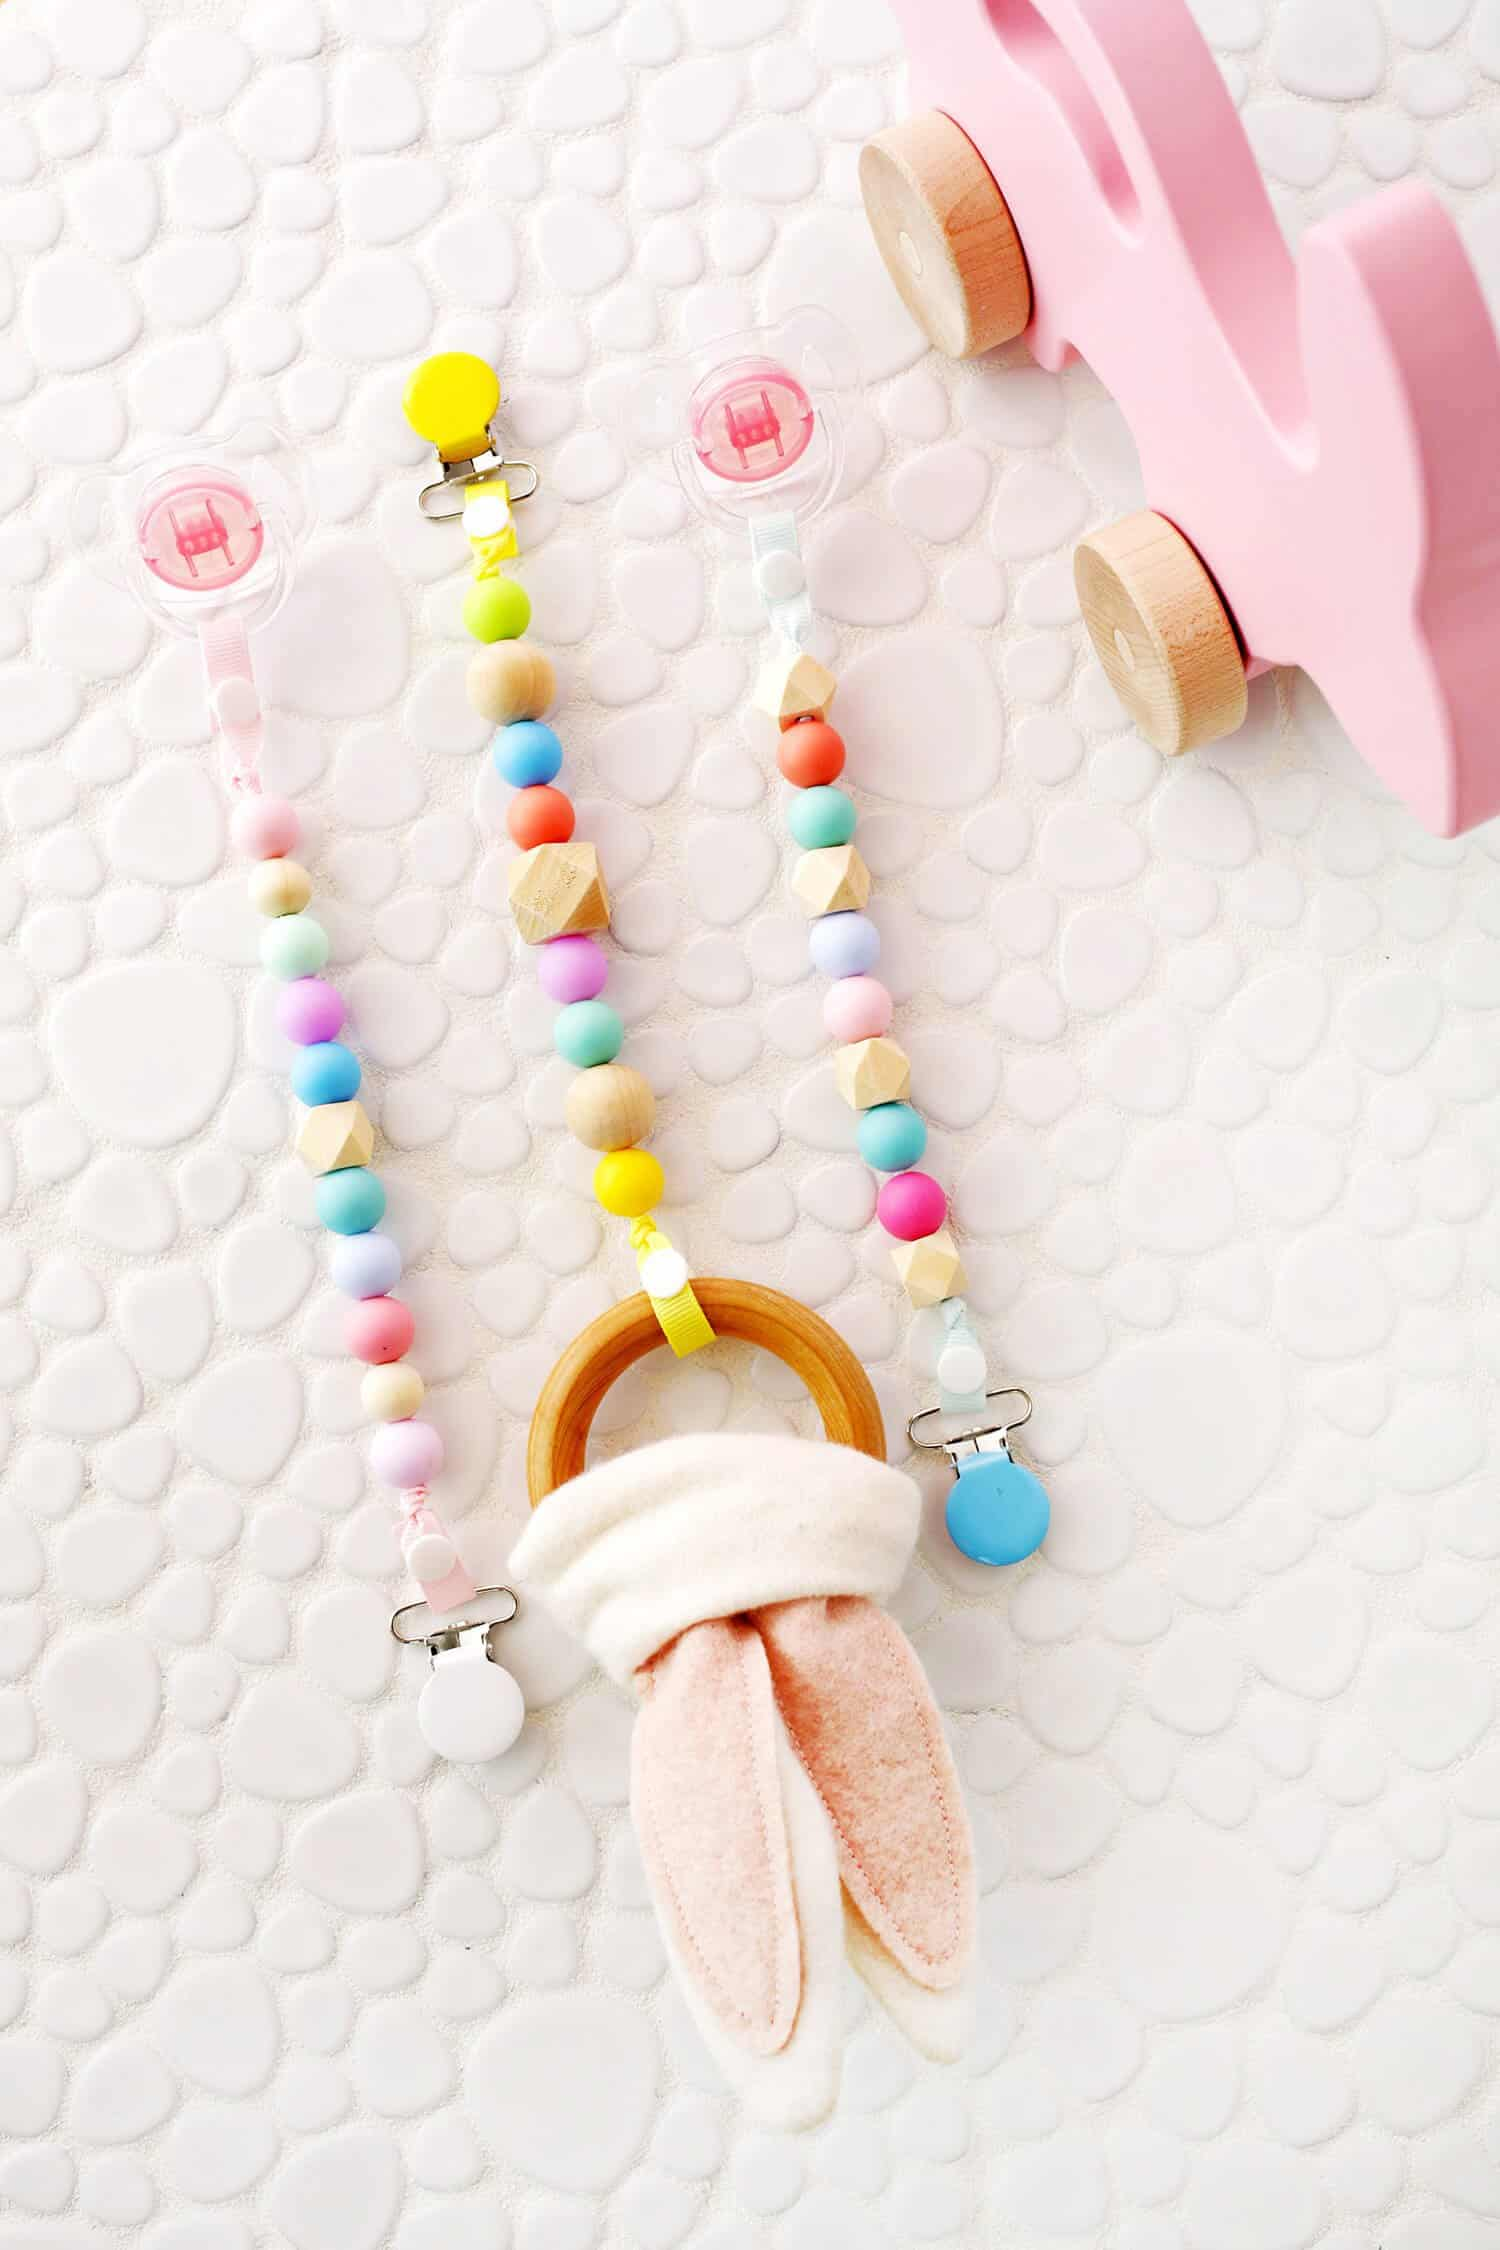 9 Diy Teethers And Teething Toys For Babies Shelterness